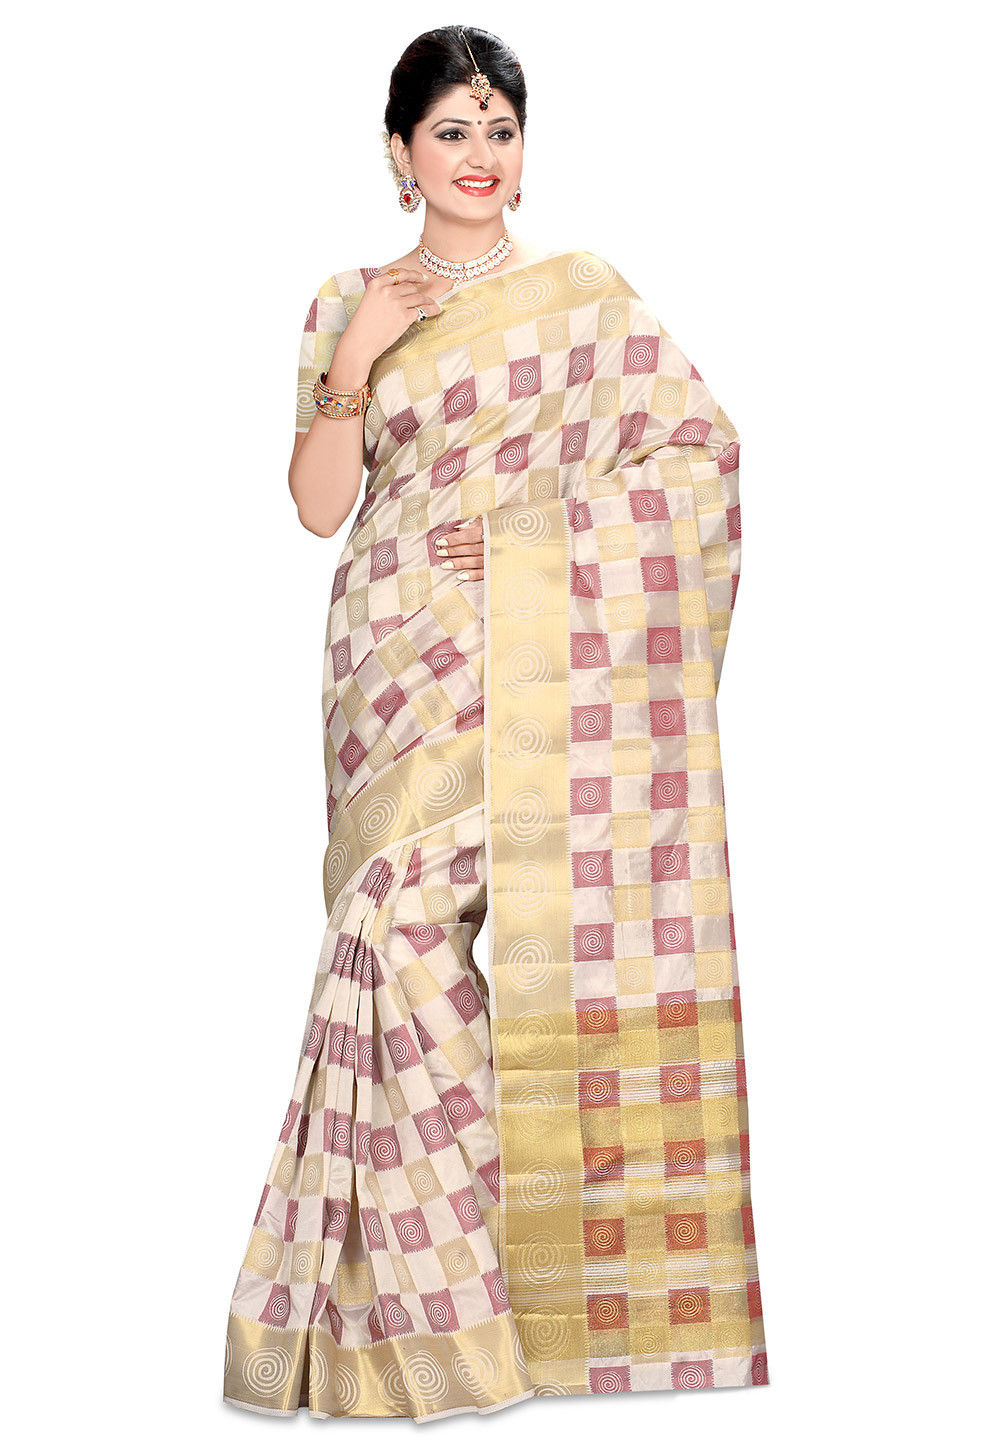 Woven Bangalore Silk Saree in Light Beige